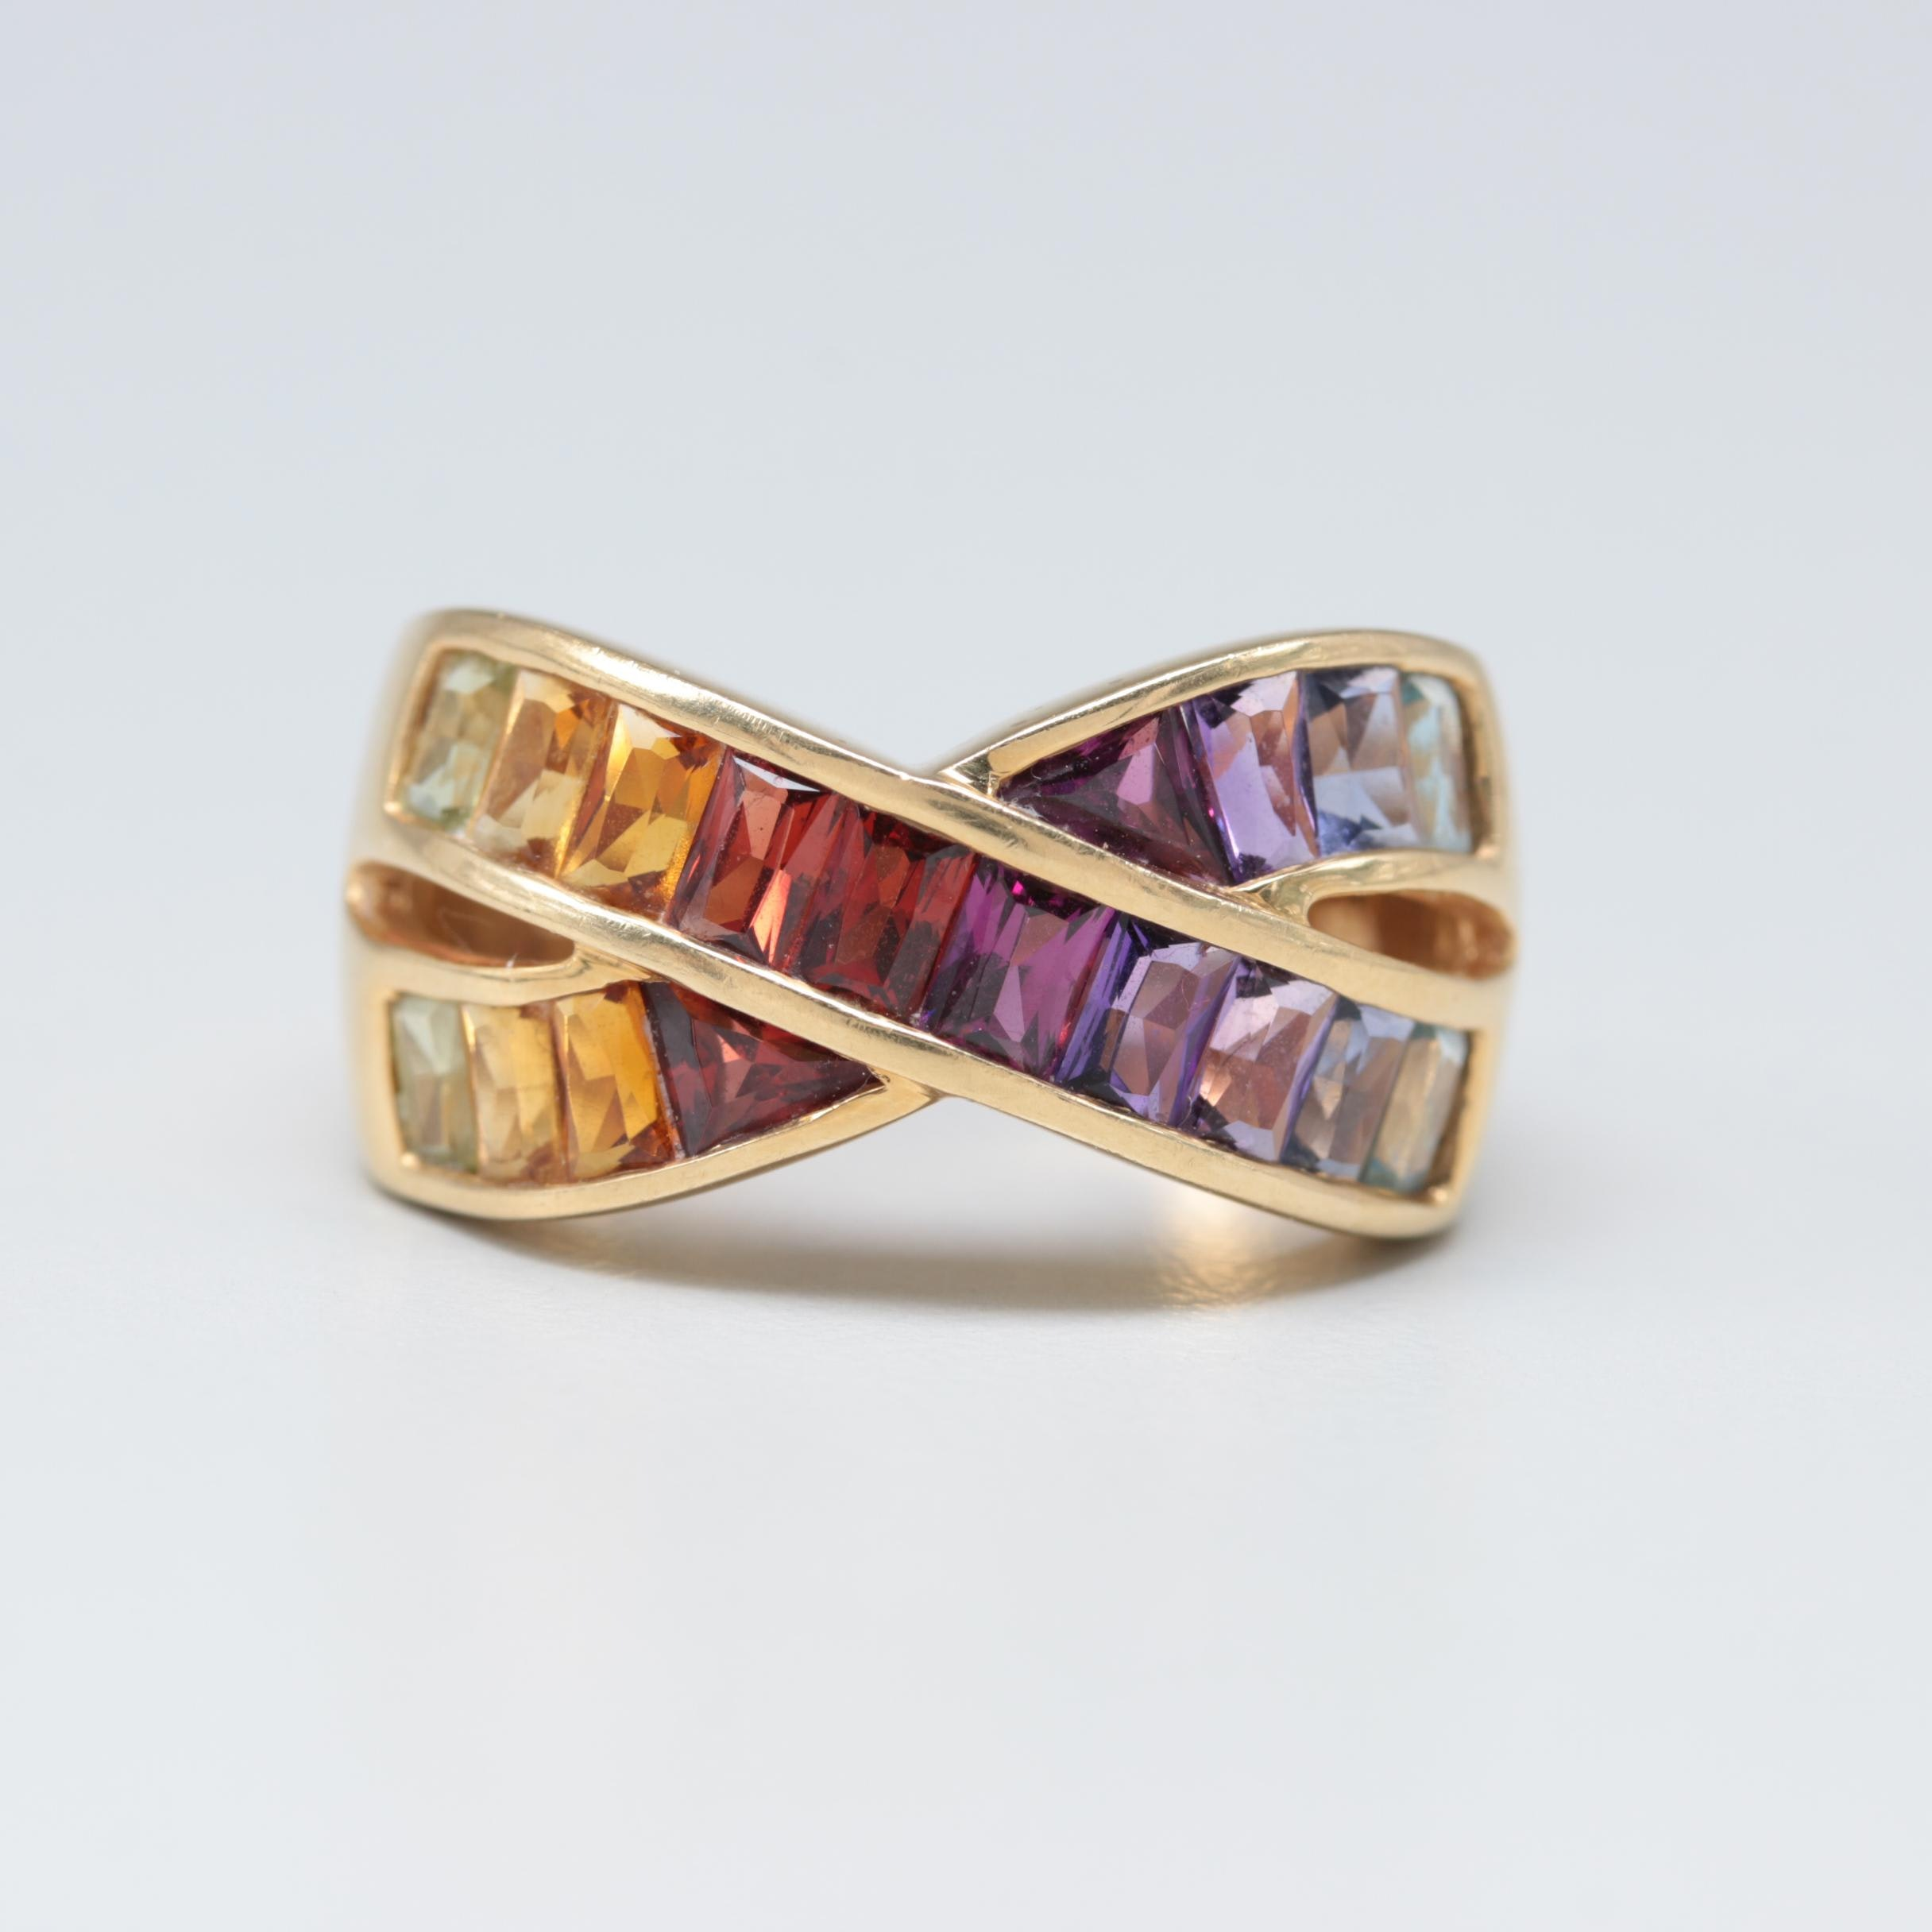 18K Yellow Gold Crisscross Ring with Amethyst and Garnet